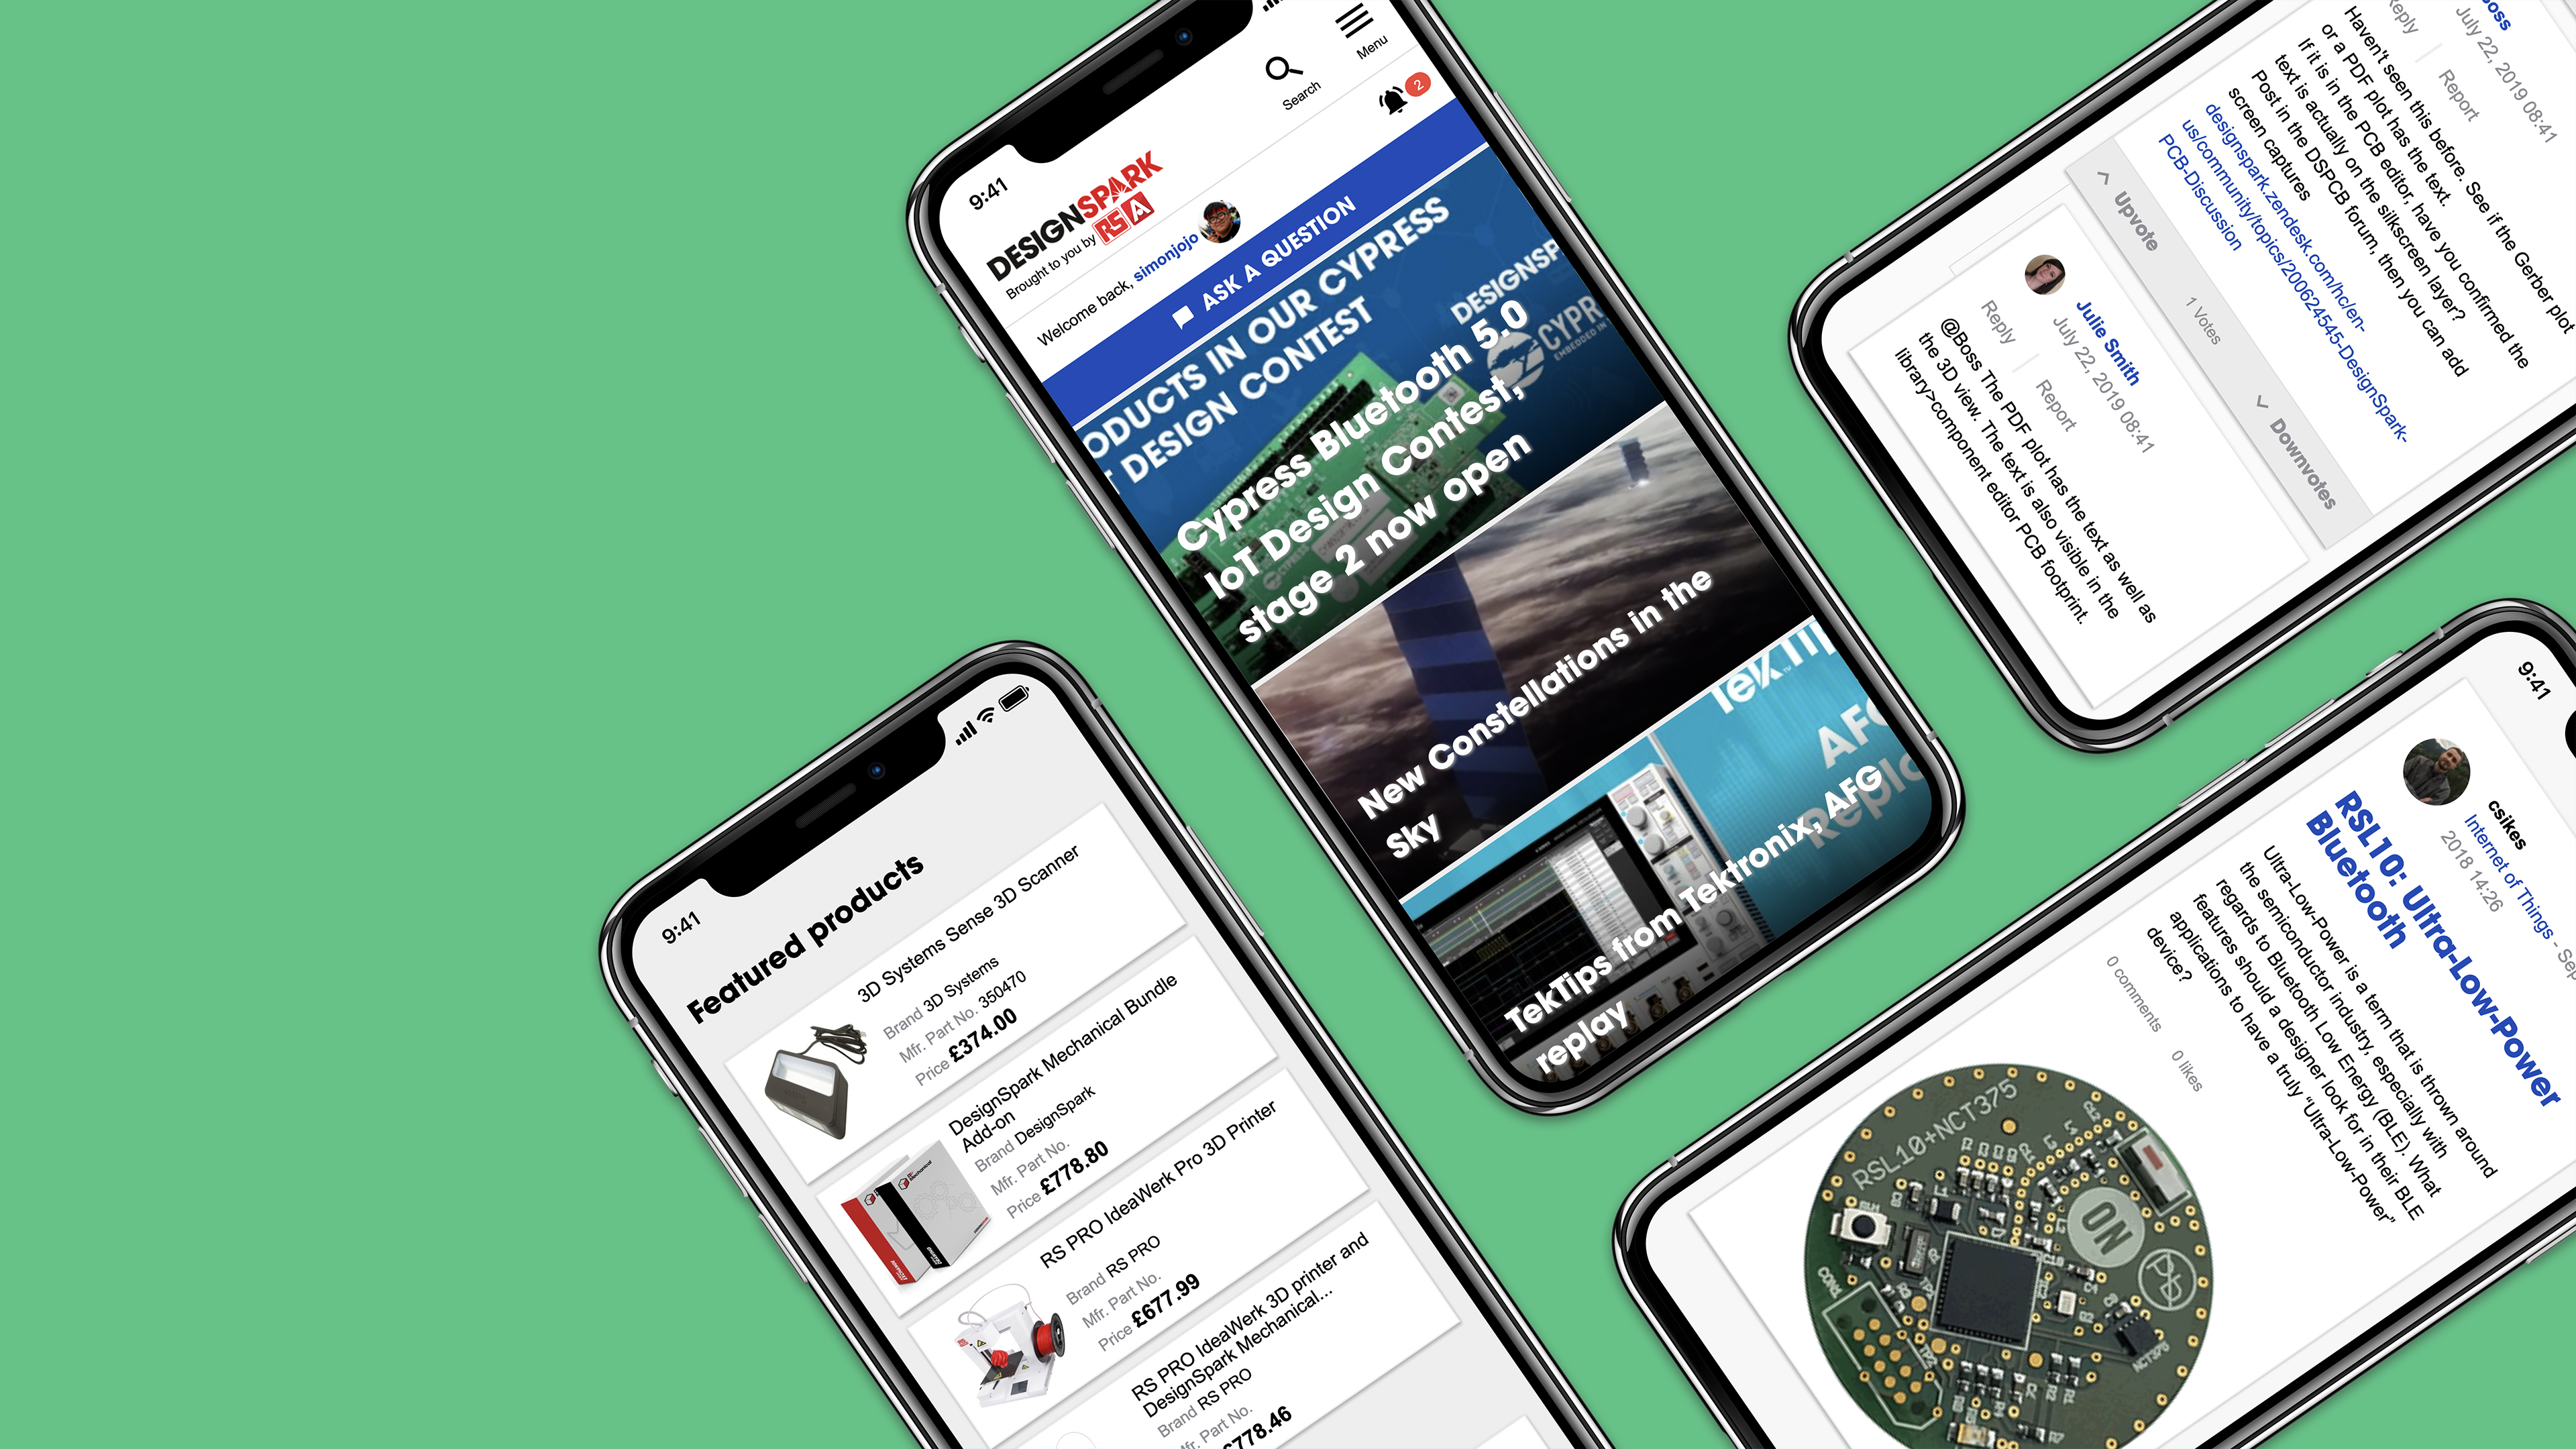 mobile phone with websites pages open RS Design Spark